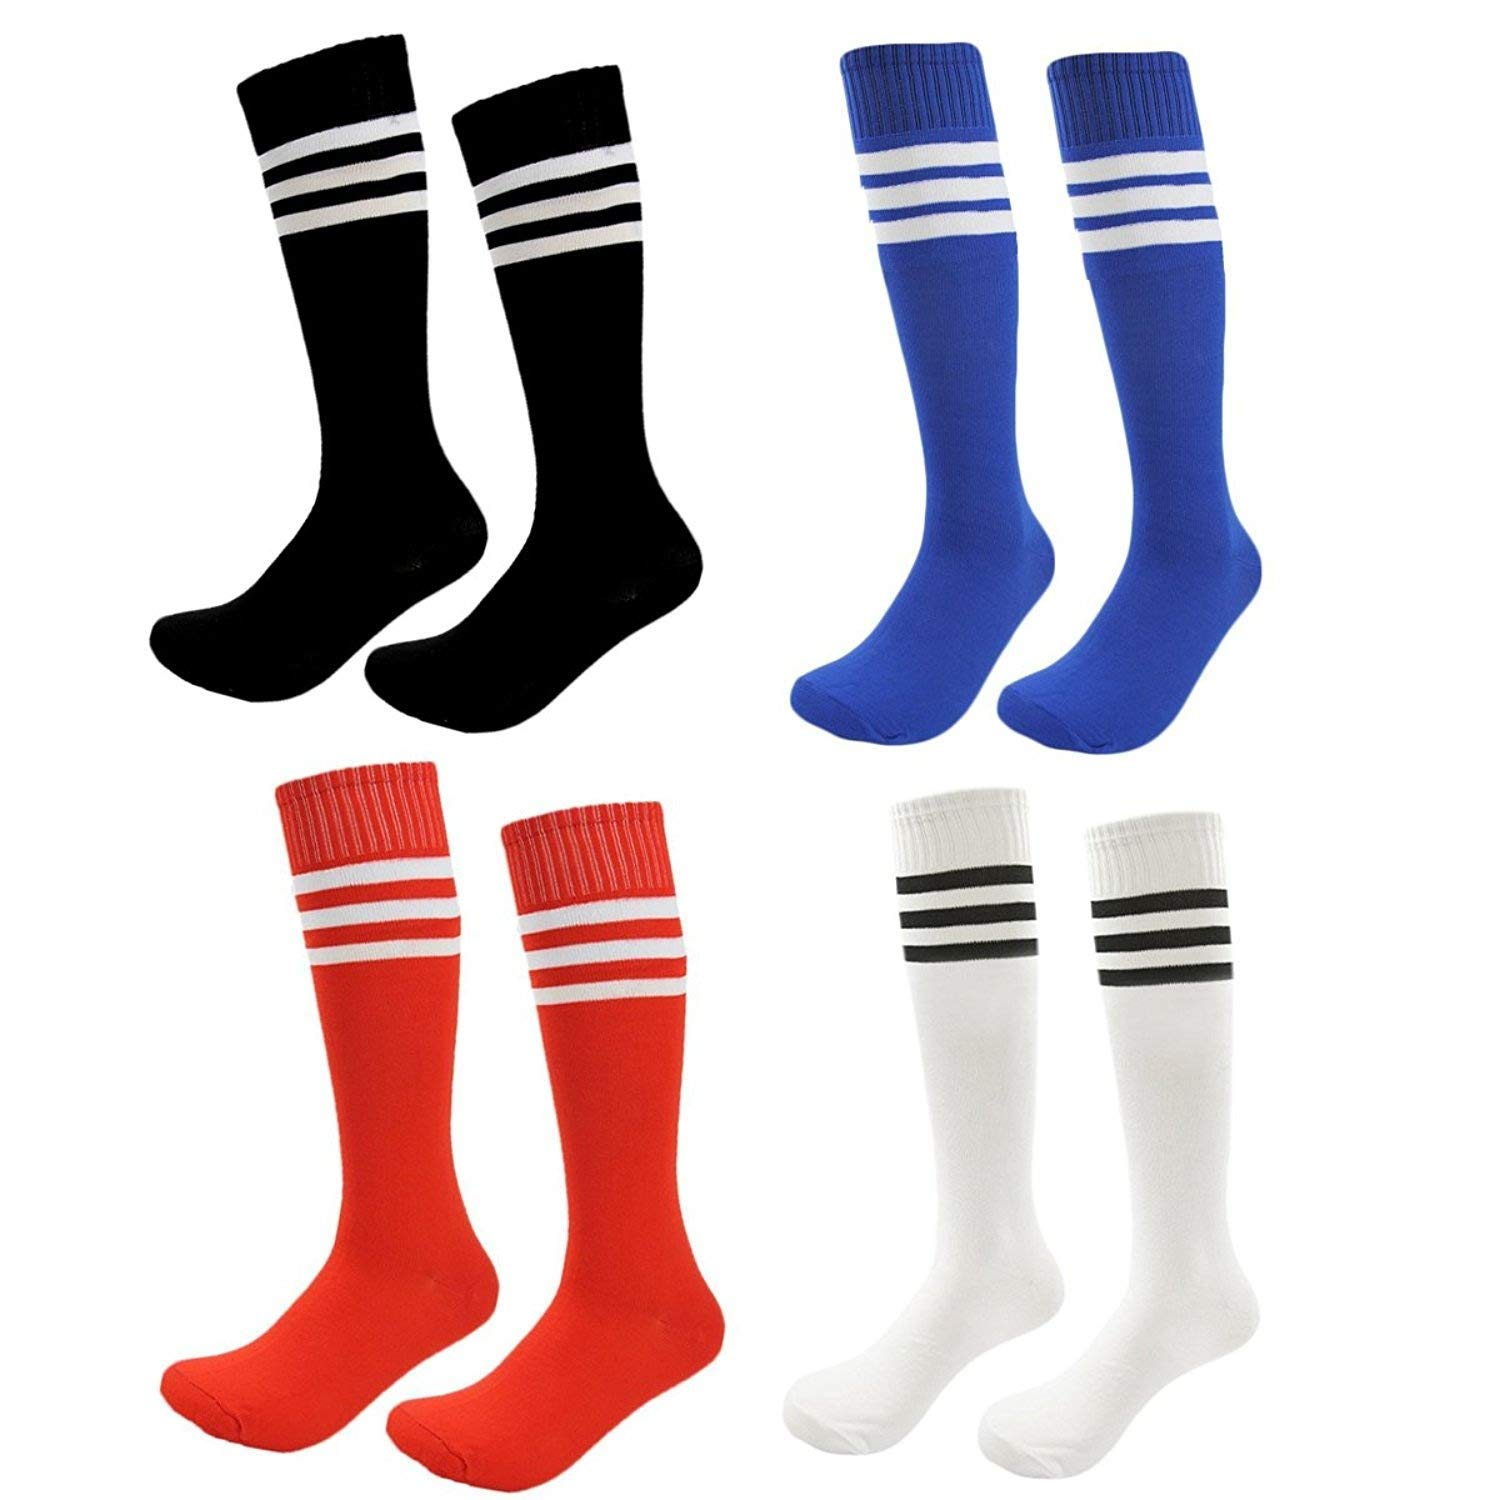 46d0ce2a9 Get Quotations · Kids Soccer Socks 4 Pack Boys Girls Cotton Team Socks  Teens Children Soccer Socks